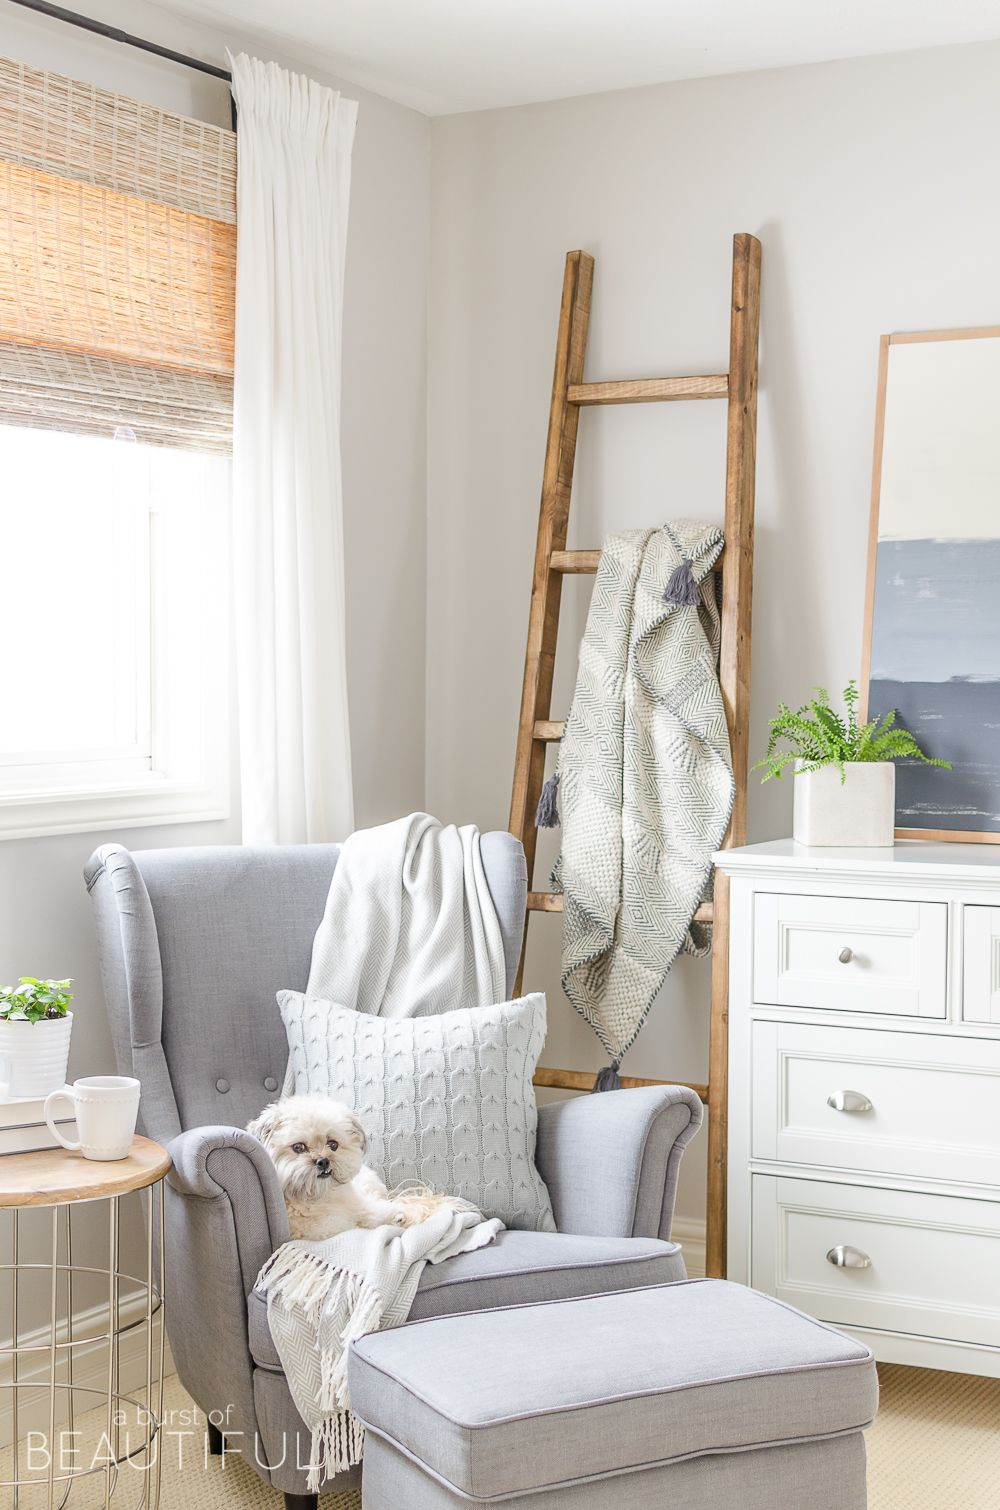 A Simple Diy Angled Blanket Ladder Adds A Touch Of Farmhouse Charm To This Cozy Bedroom